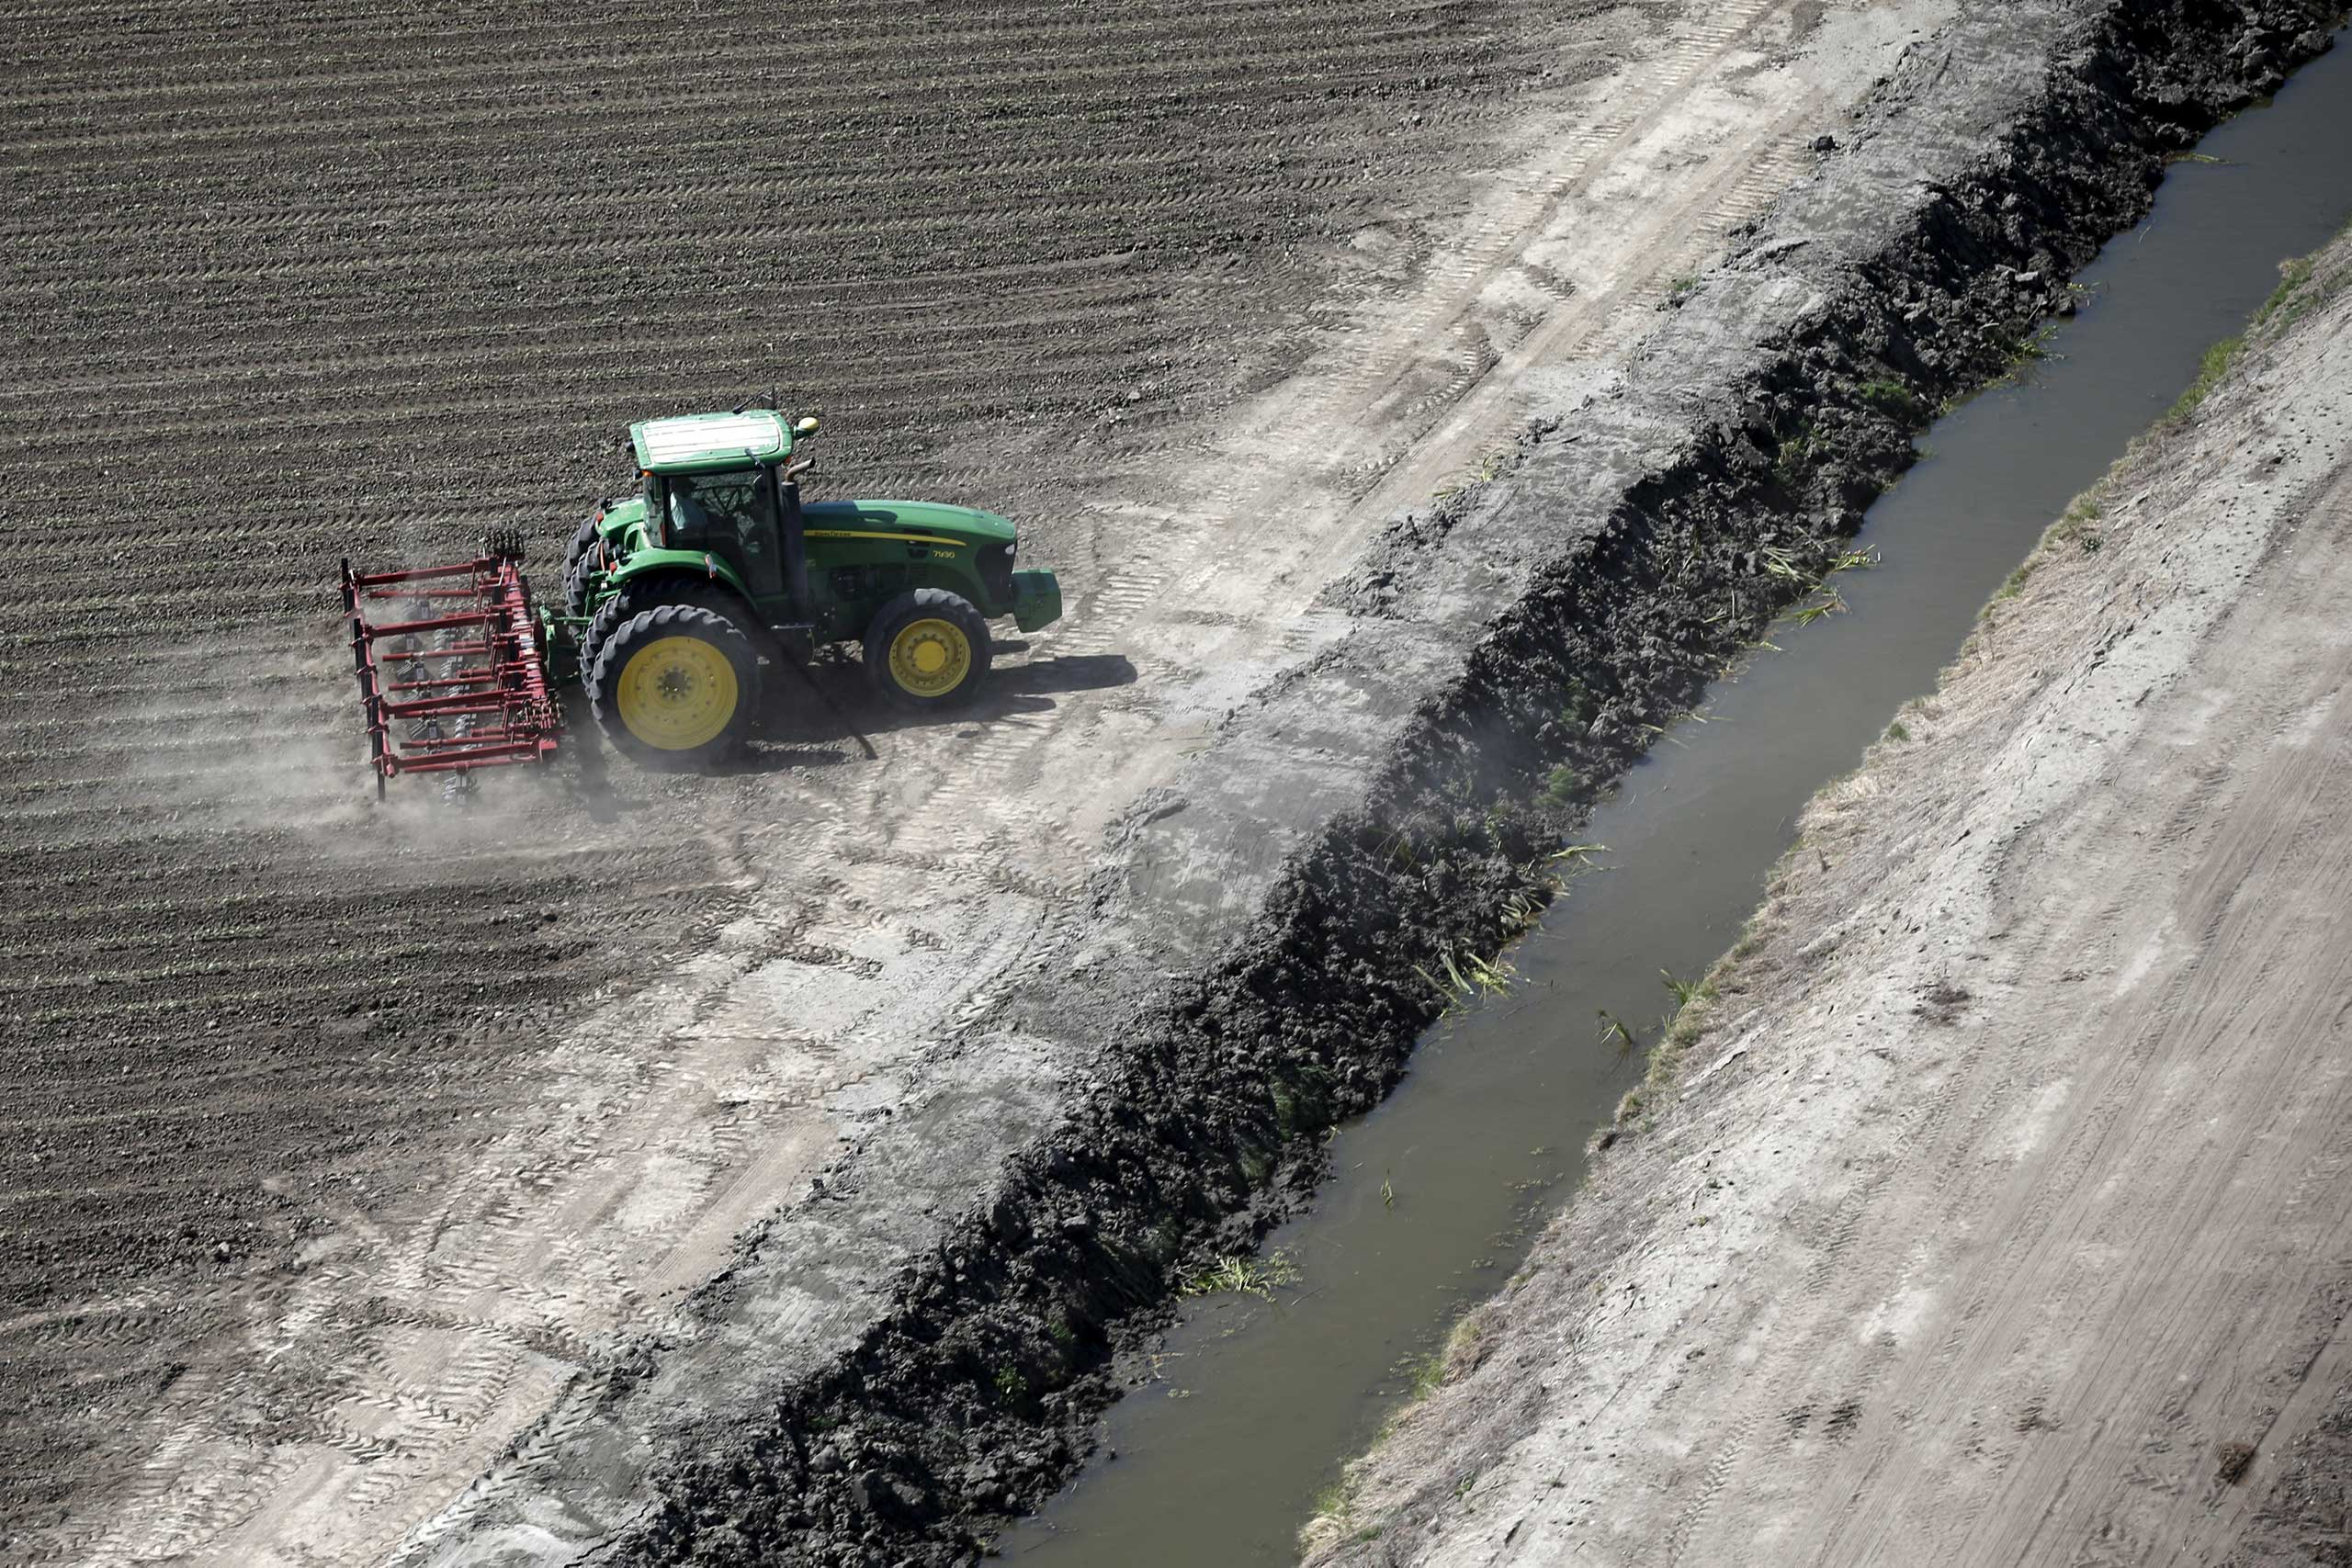 A tractor ploughs a field next to a canal in Los Banos, Calif. on May 5, 2015. California water regulators on Tuesday adopted the state's first rules for mandatory cutbacks in urban water use as the region's catastrophic drought enters its fourth year. However, the state's massive agricultural sector, which the Public Policy Institute of California says uses 80 percent of human-related consumption, has been exempted from cutbacks.